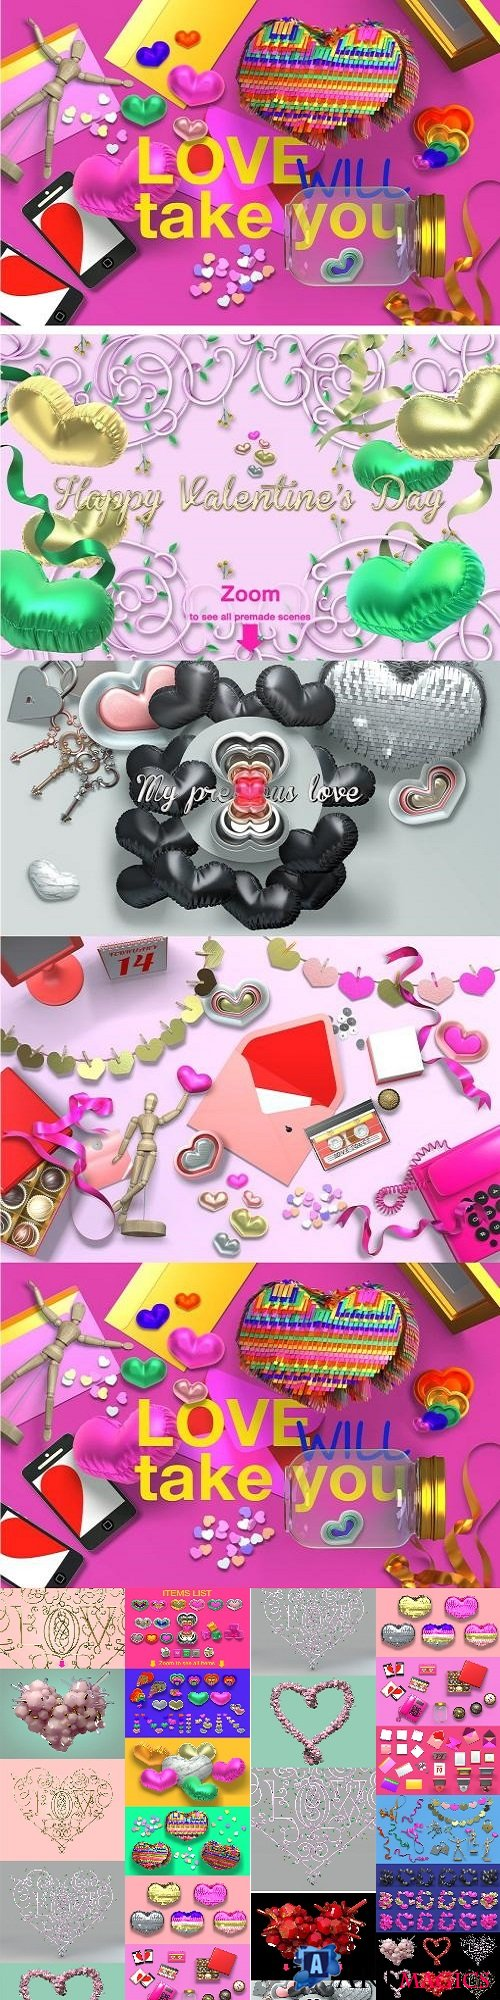 Super fancy Valentine's Day Pack - 2278661 (Full Collection)